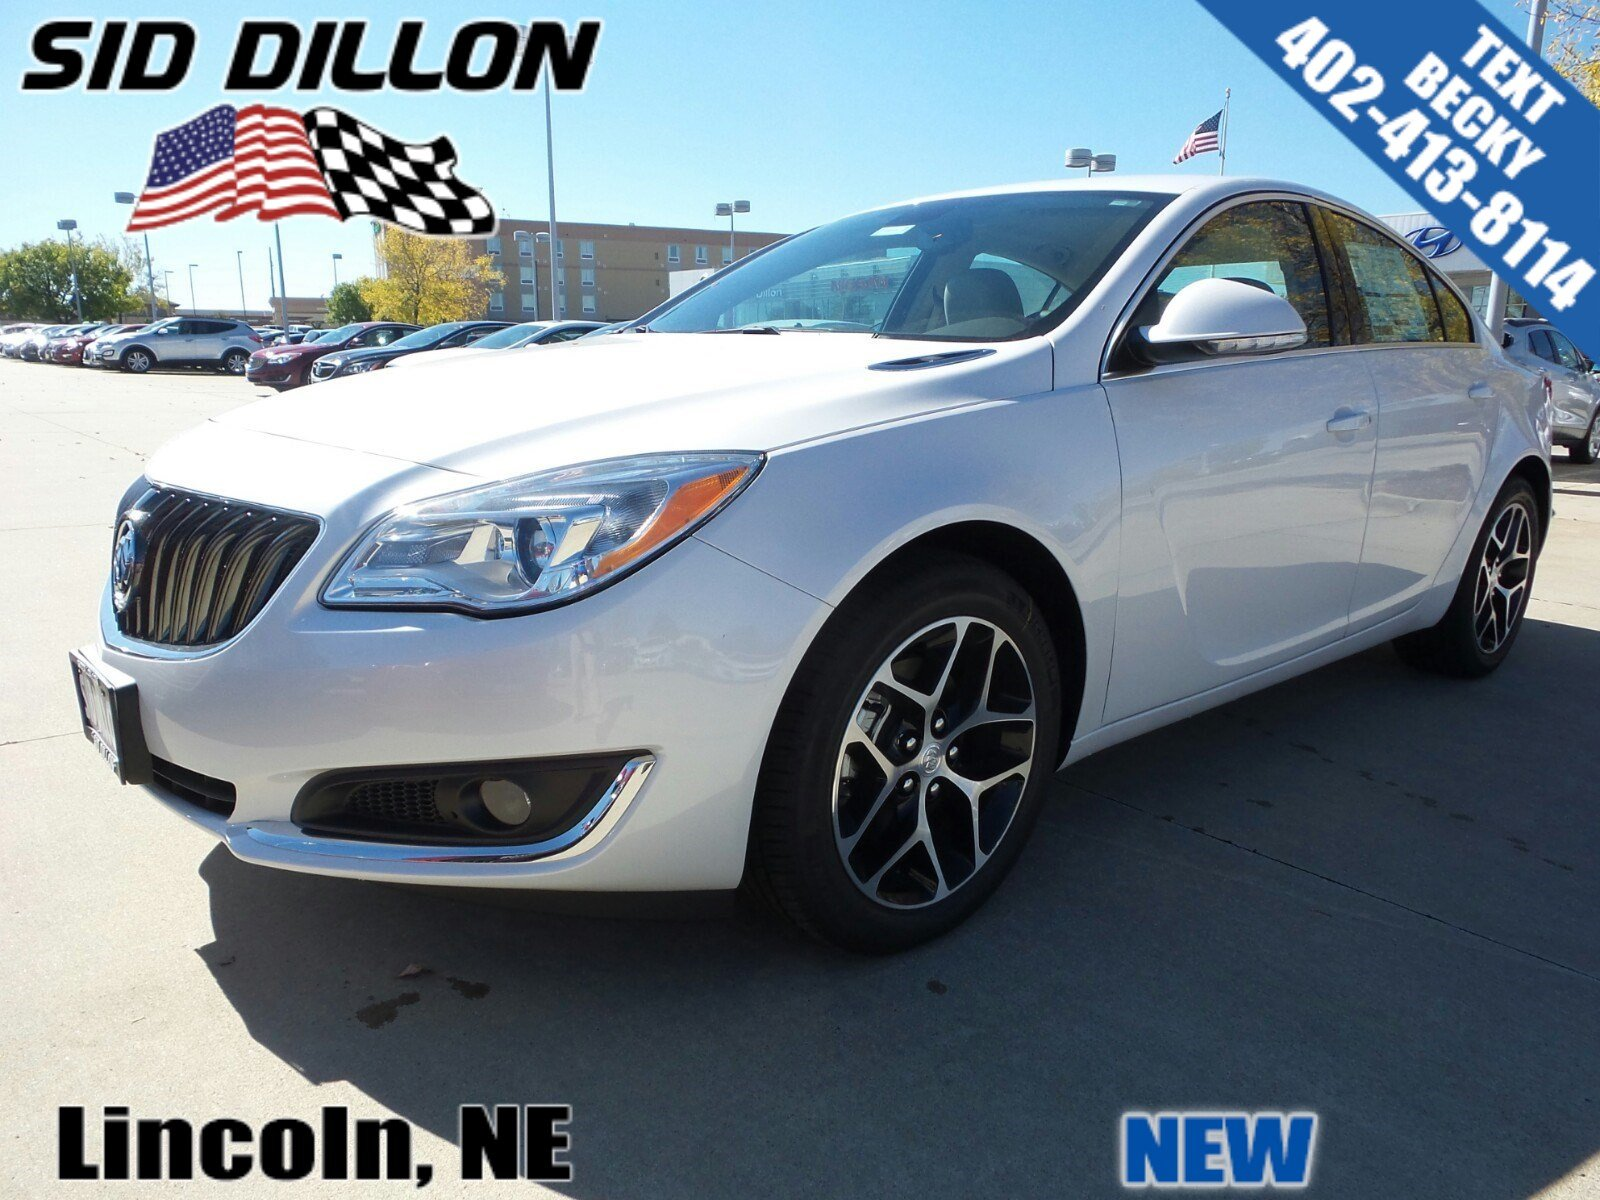 new 2017 buick regal sport touring 4 door sedan in lincoln 4b1715 sid dillon auto group. Black Bedroom Furniture Sets. Home Design Ideas